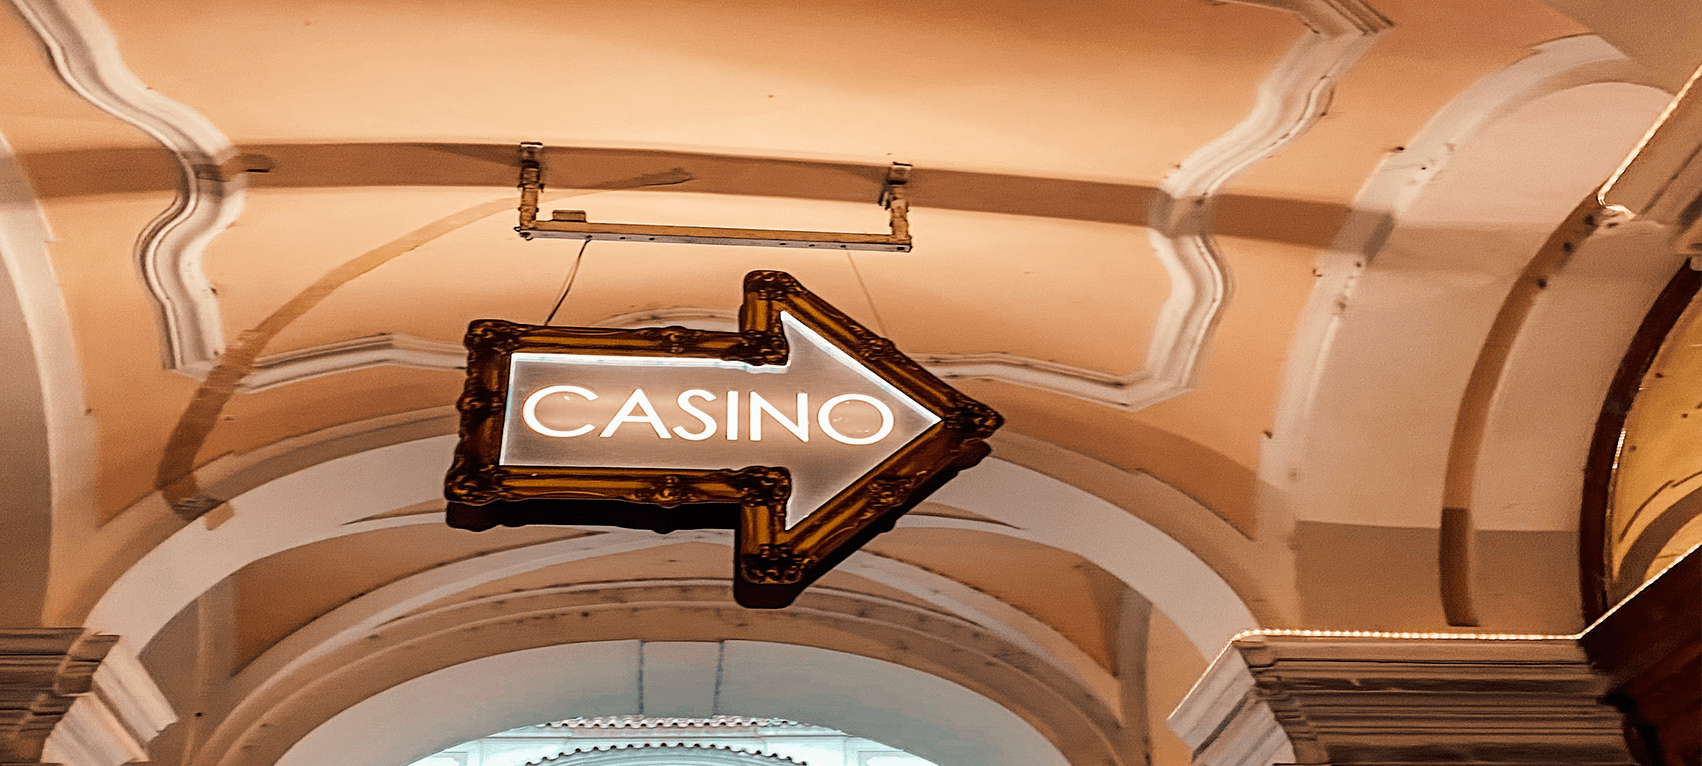 https://www.gambleonline.co/app/uploads/2021/03/casino-sign-1.png